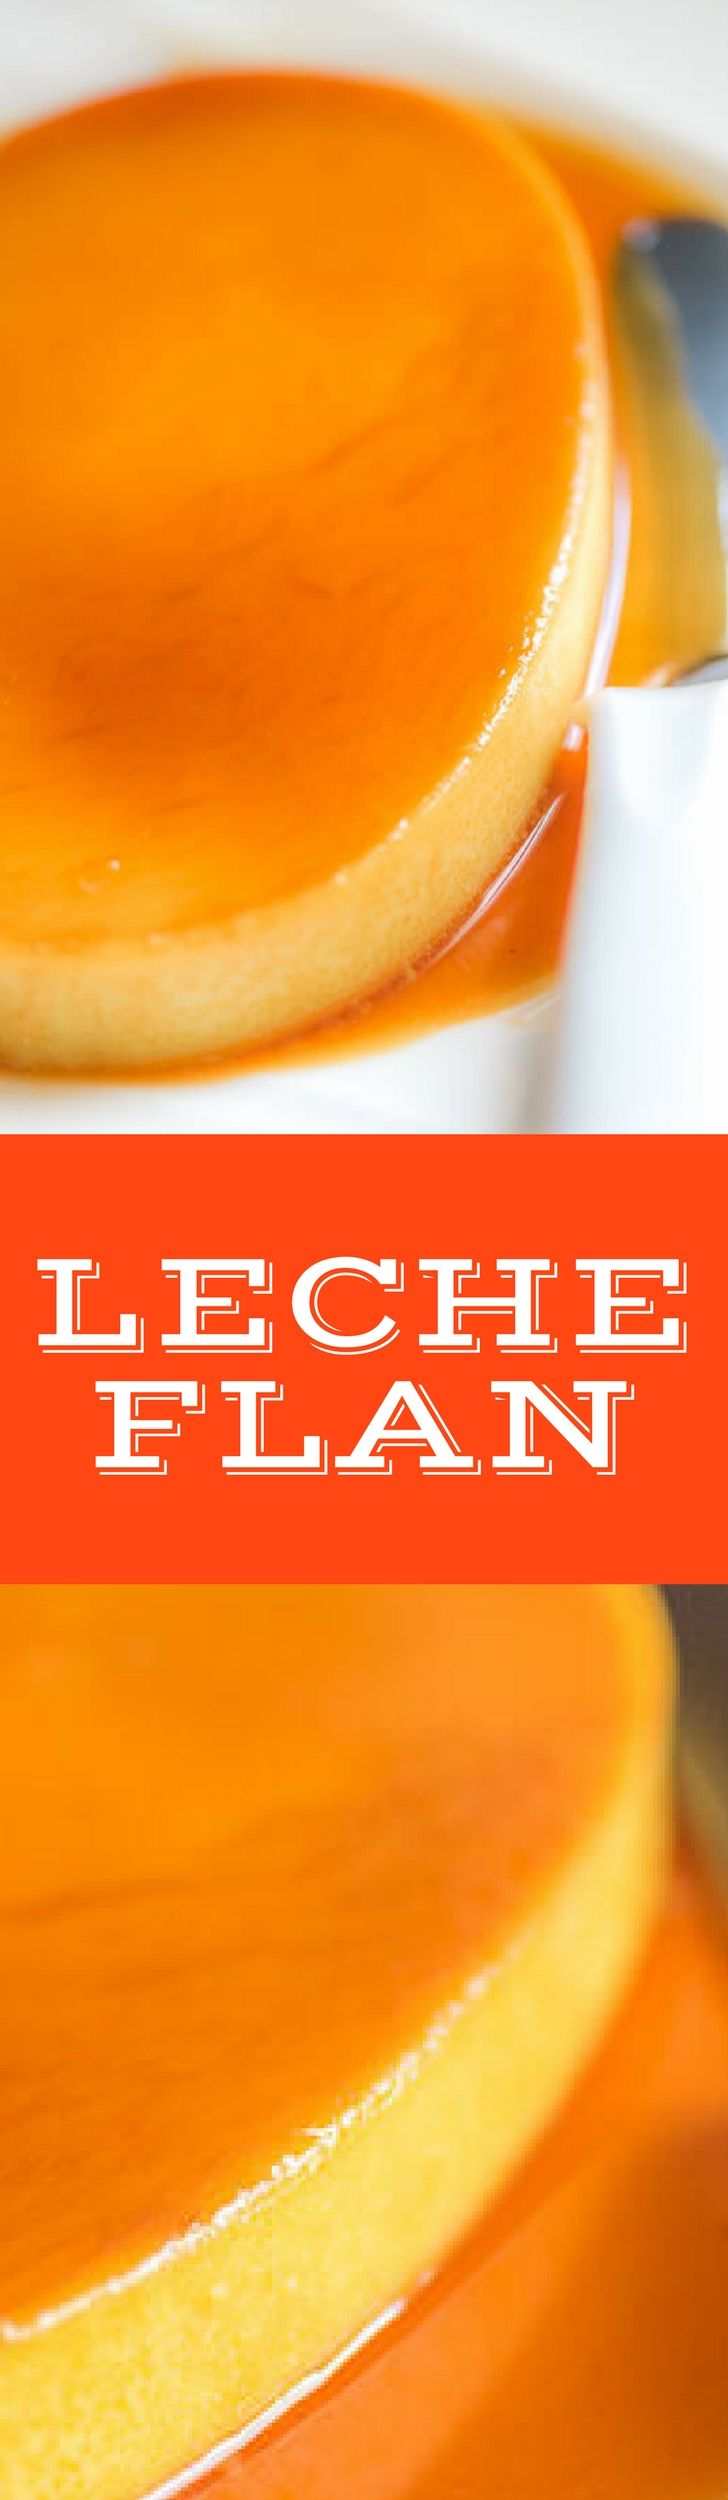 Leche Flan is probably the most popular Filipino dessert. It is a type of custard with caramel on to and resembles creme brulee or creme caramel. This is a good dessert that can be served after lunch or dinner. #filipinorecipes #panlasangpinoy #dessert #dessertideas #custard #pinoy #filipino #yummy #nomnom #sweets